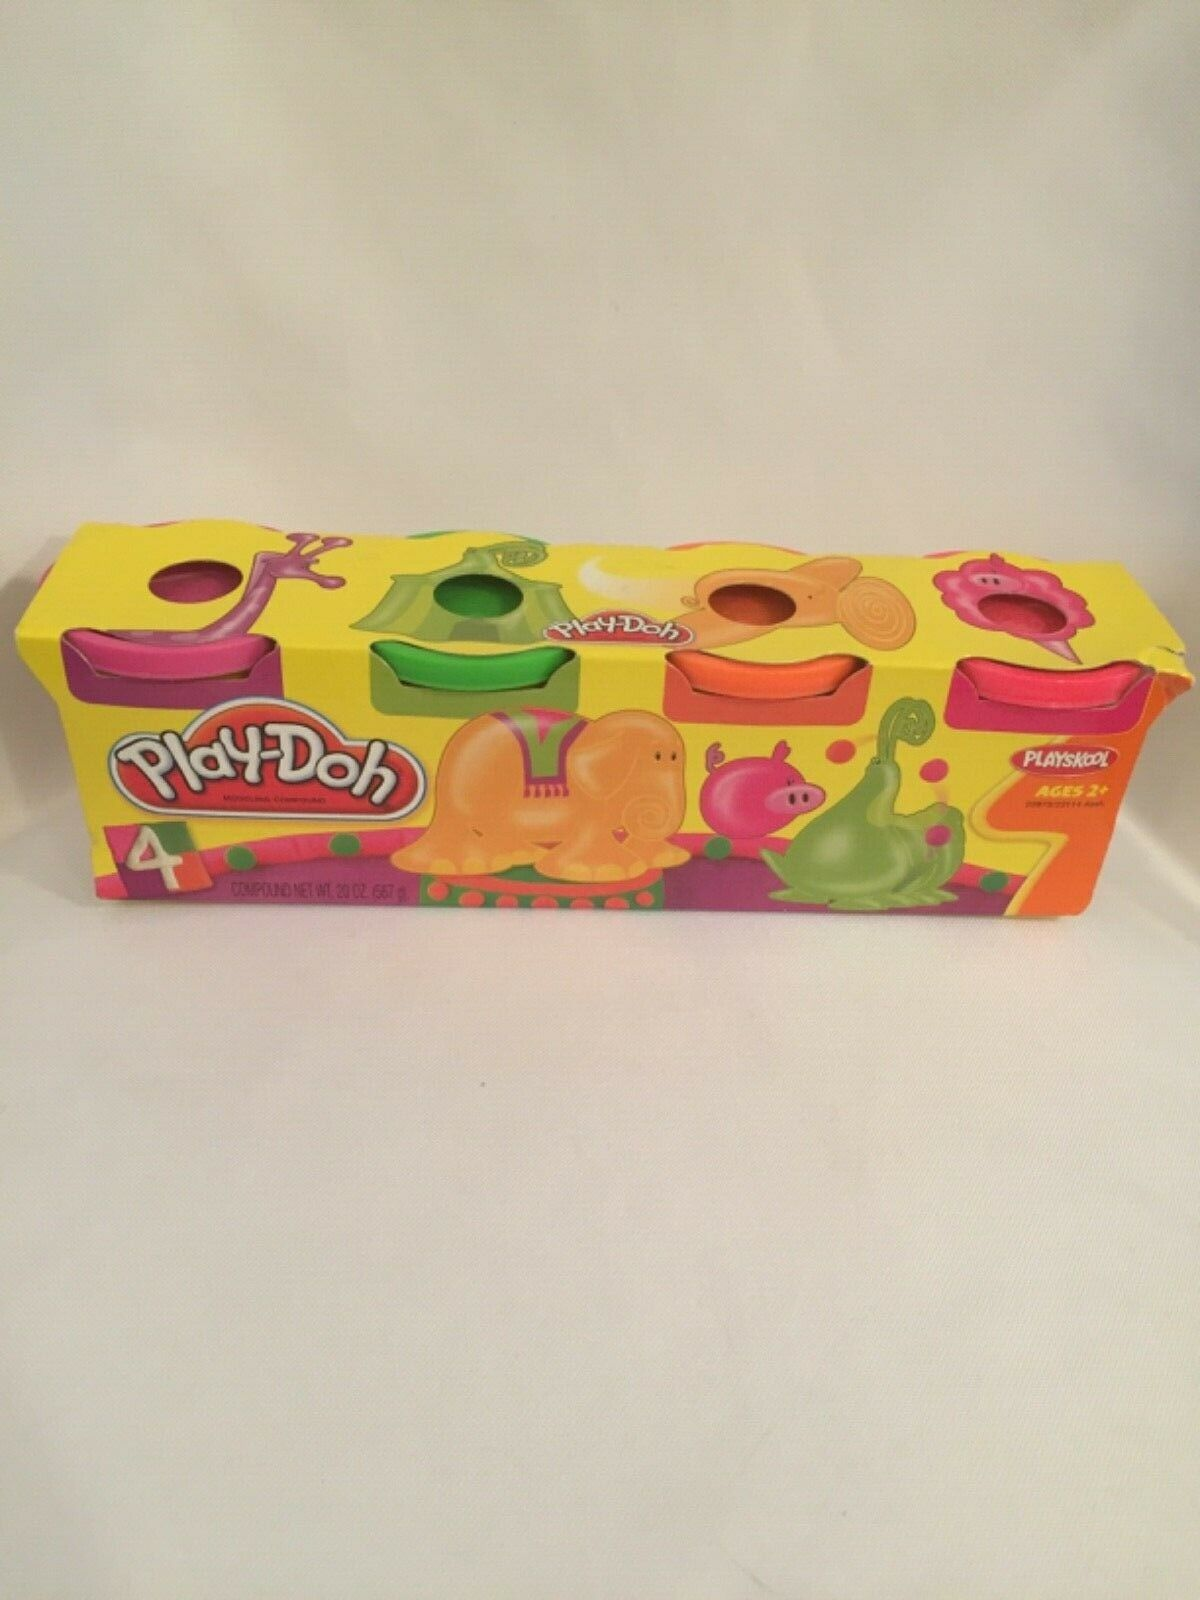 Purple Green Blue Orange Hasbro Play-Doh 4-Pack of Colors 16 Ounce Total